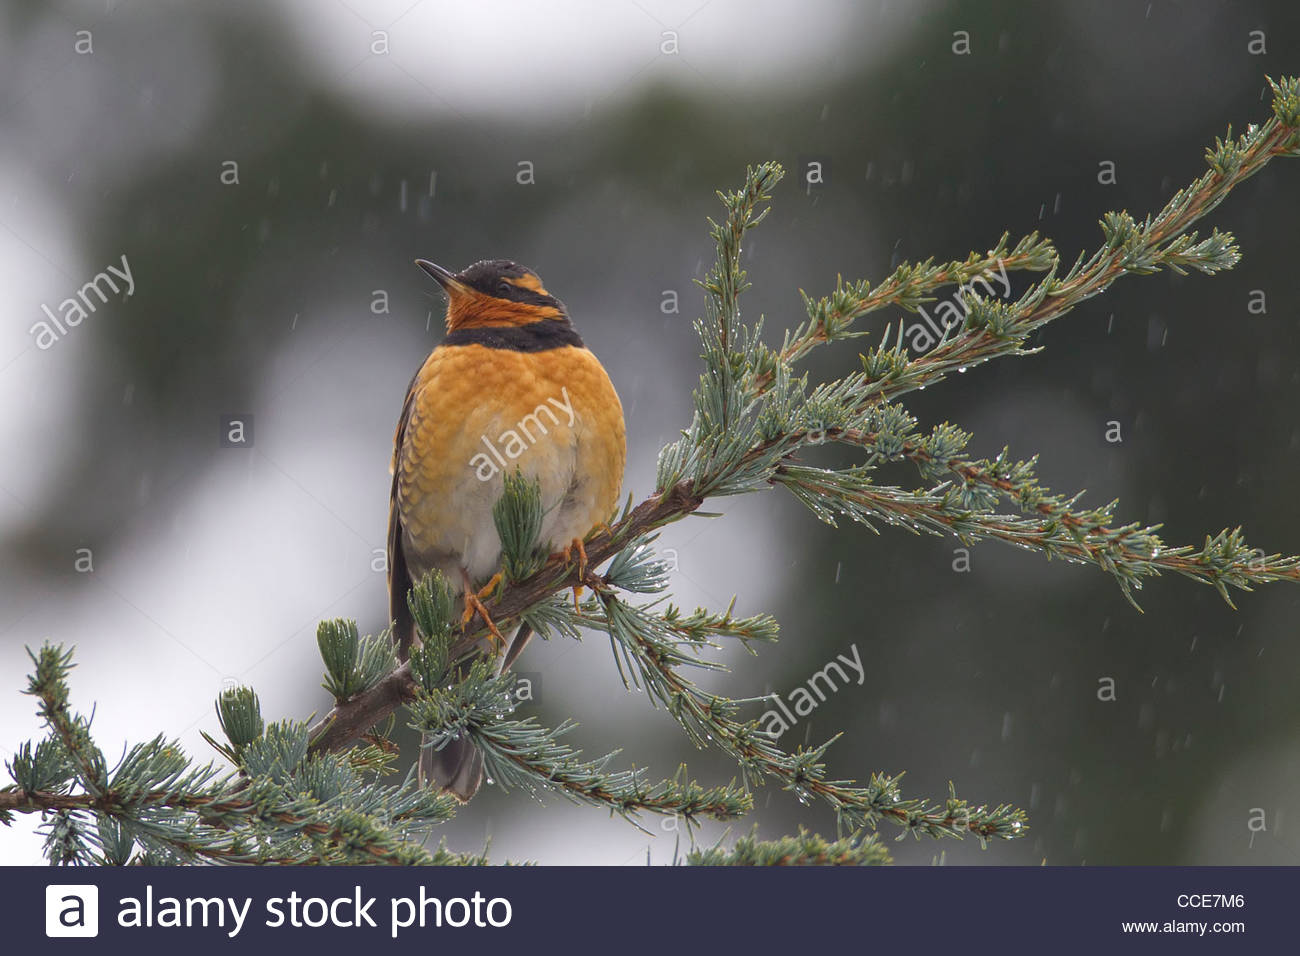 A male varied thrush (Ixoreus naevius) rests on a branch as light rain falls in Snohomish County, Washington. - Stock Image